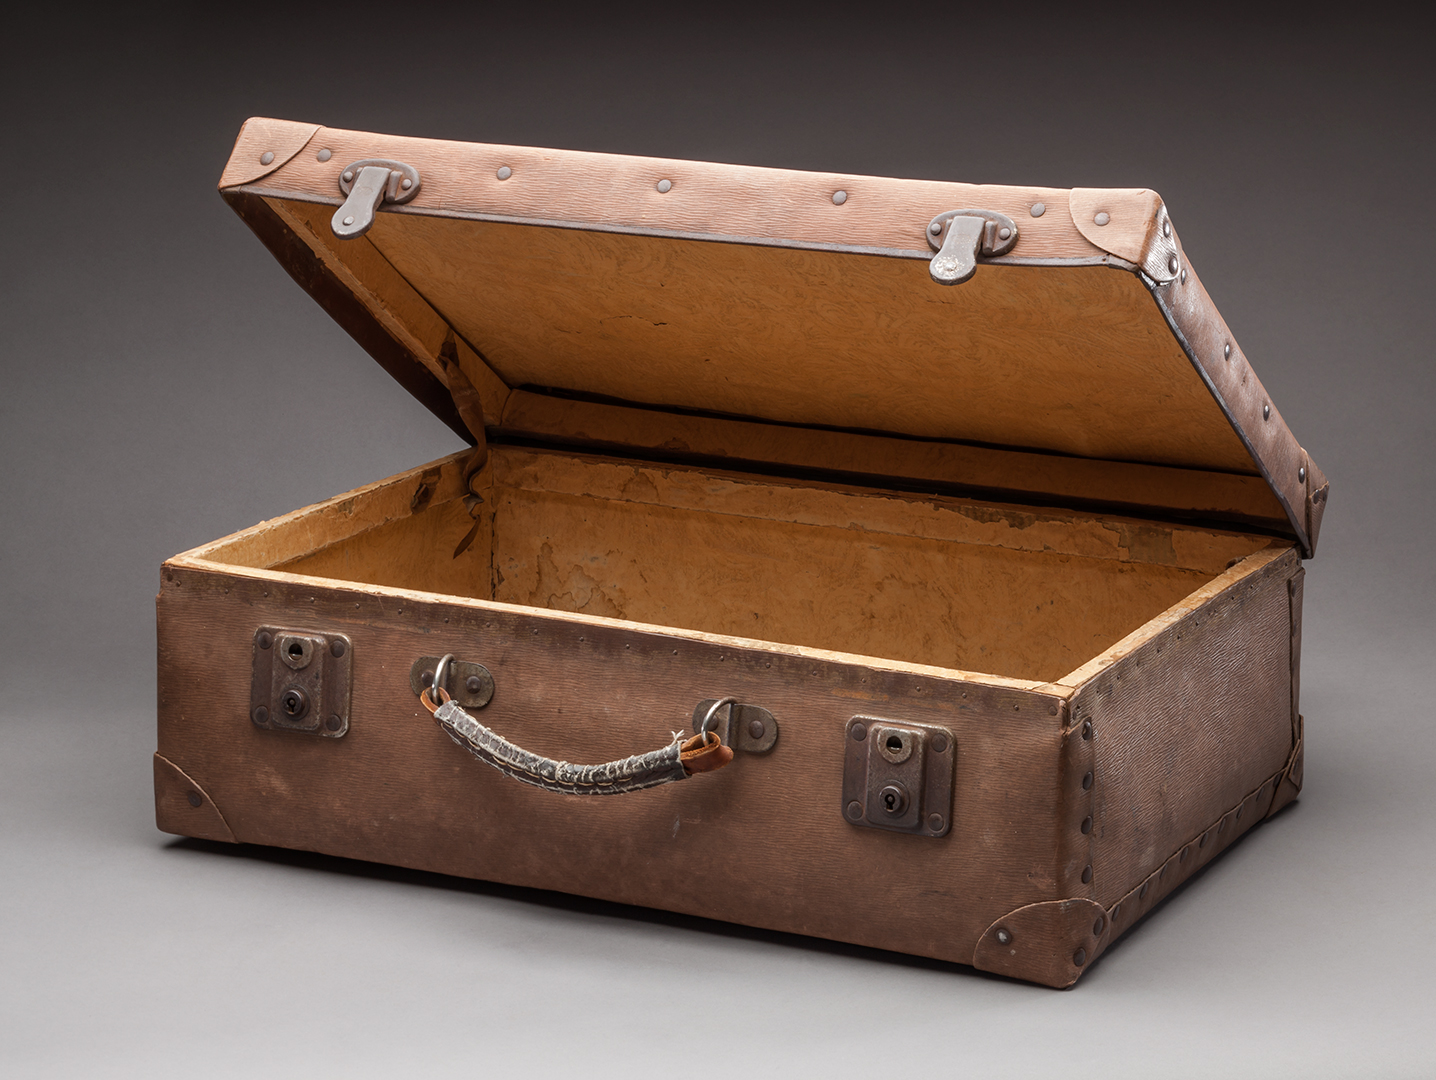 An open suitcase with metal clasps at the front, a worn handle and reinforced corners.